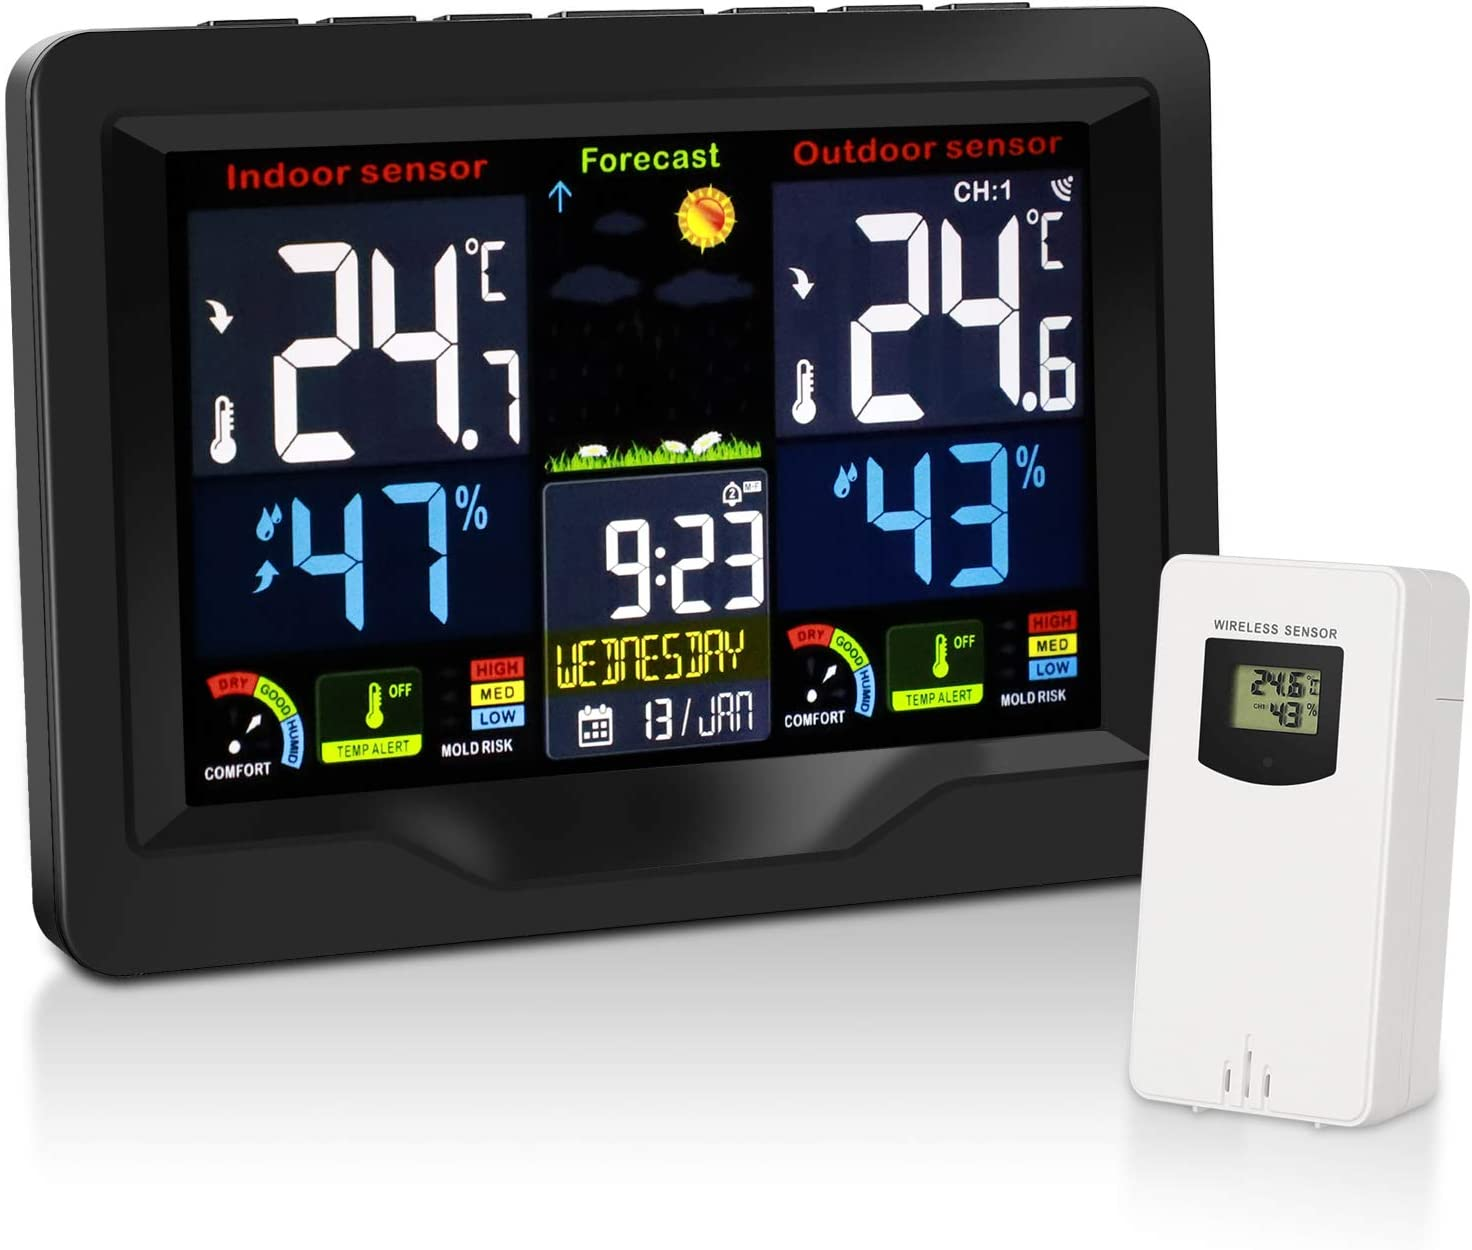 Weather Stations Wireless Indoor Outdoor Thermometer and Humidity Monitor, LCD Color Display Digital Weather Forecast Station with Calendar Dual Alarm Adjustable Backlight for Home, Bedroom, Office